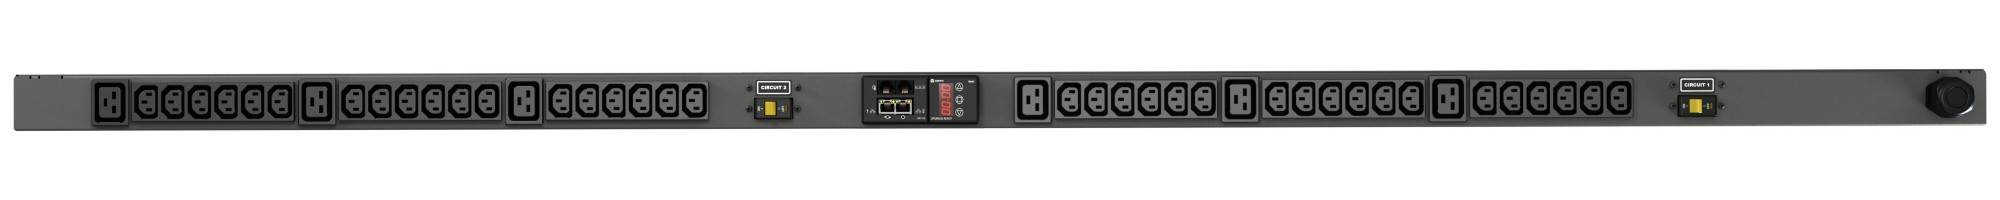 VERTIV VP8853 GEIST RPDU, MONITORED, 0U, INPUT IEC60309 230V 32A, OUTPUTS (36)C13 | (6)C19 POWER DISTRIBUTION UNIT (PDU) BLACK 42 AC OUTLET(S)